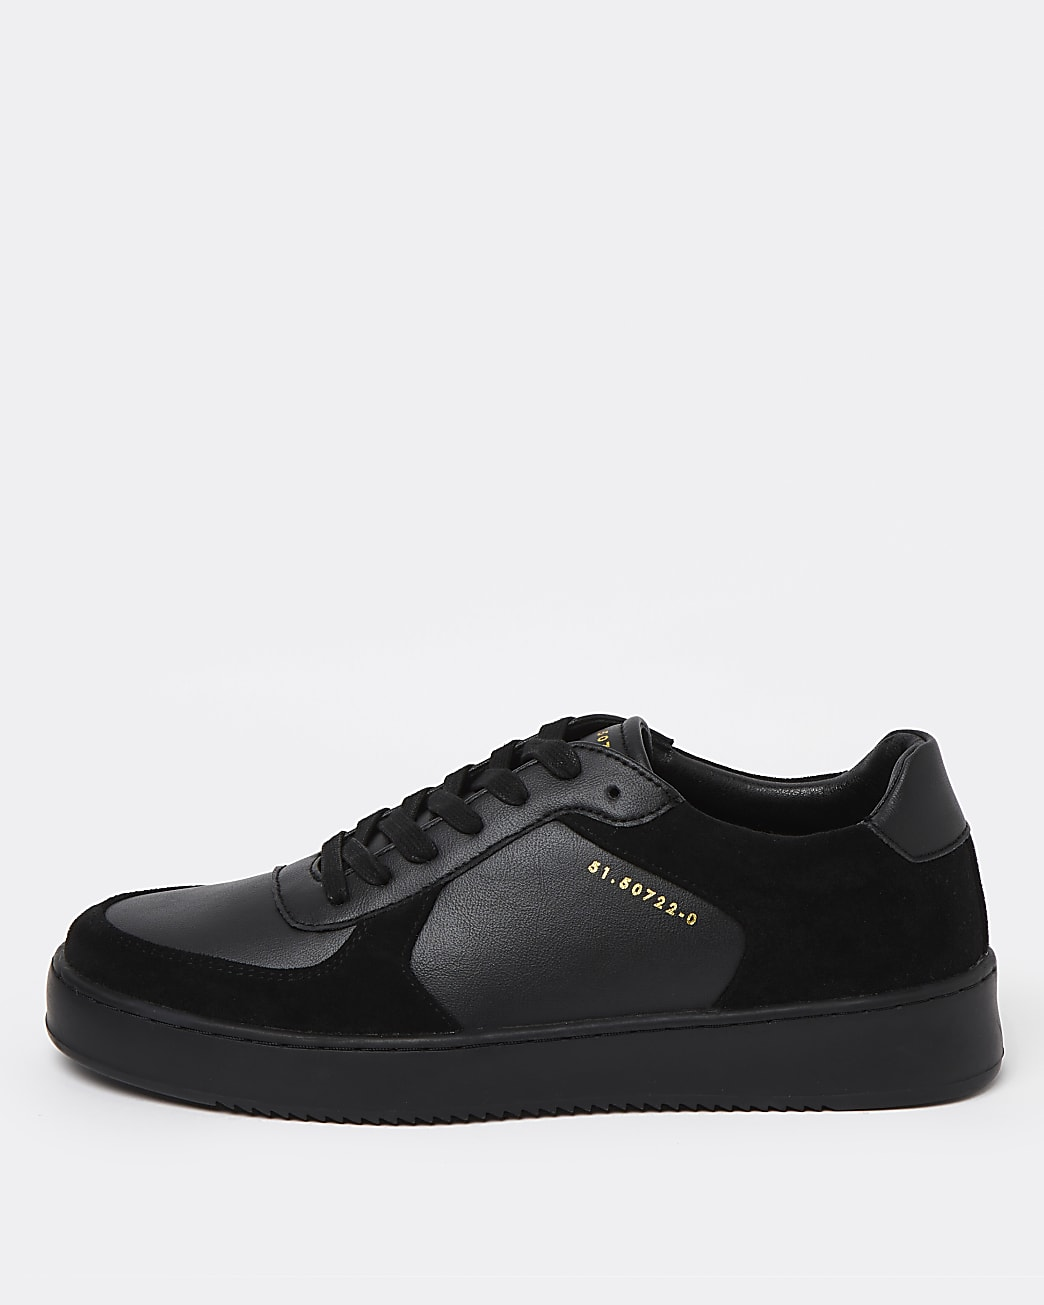 Black faux leather lace up trainers